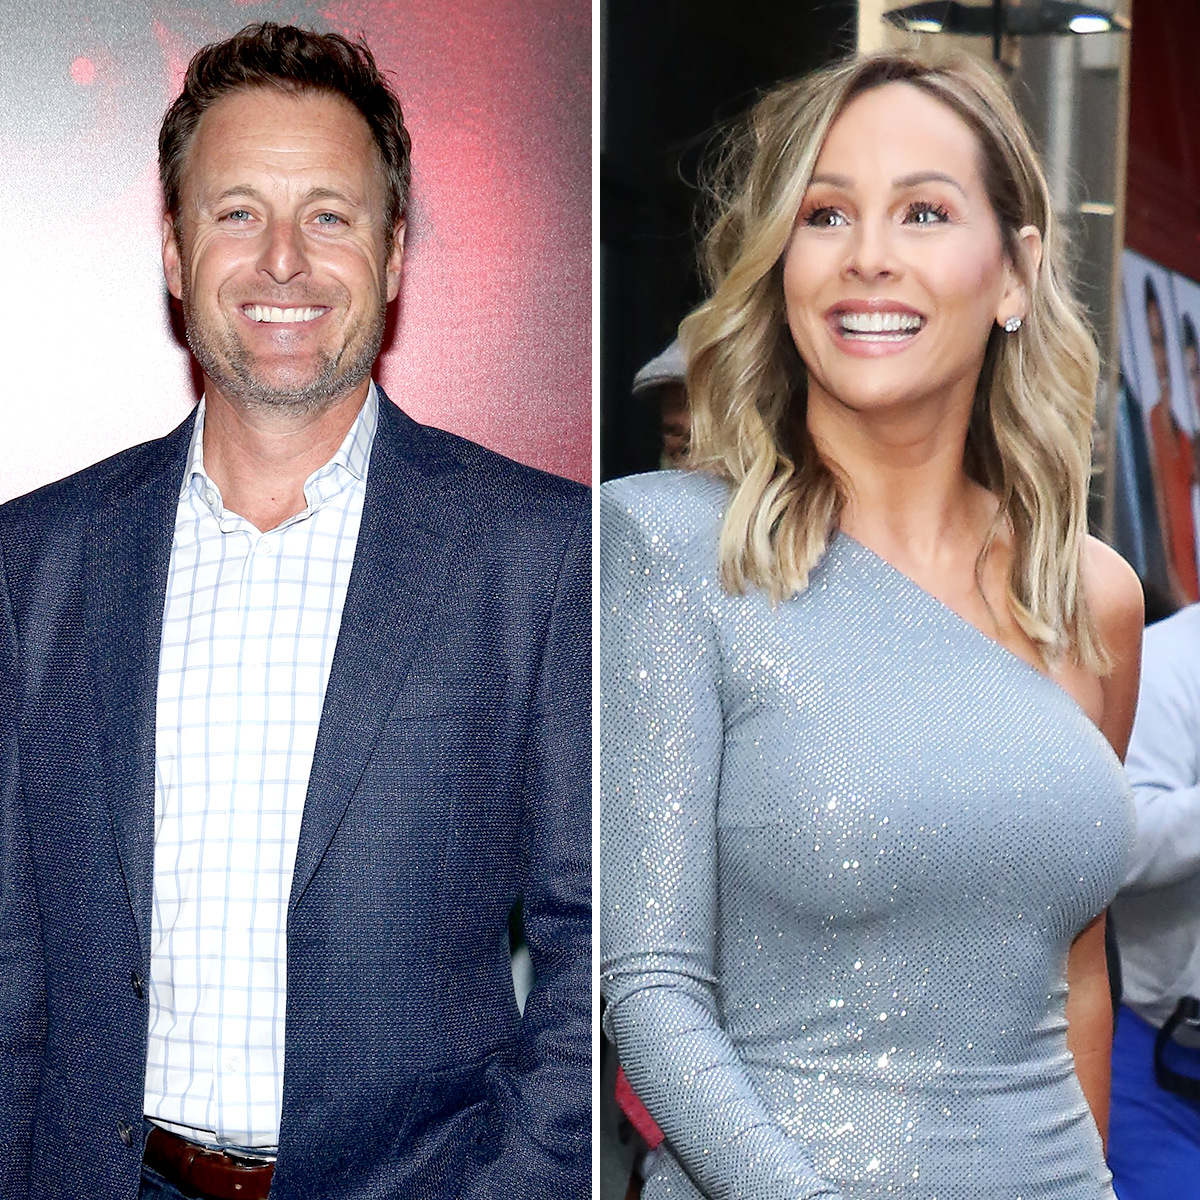 Chris Harrison Clare Crawley Contestants May Completely Change Now Due to Coronavirus